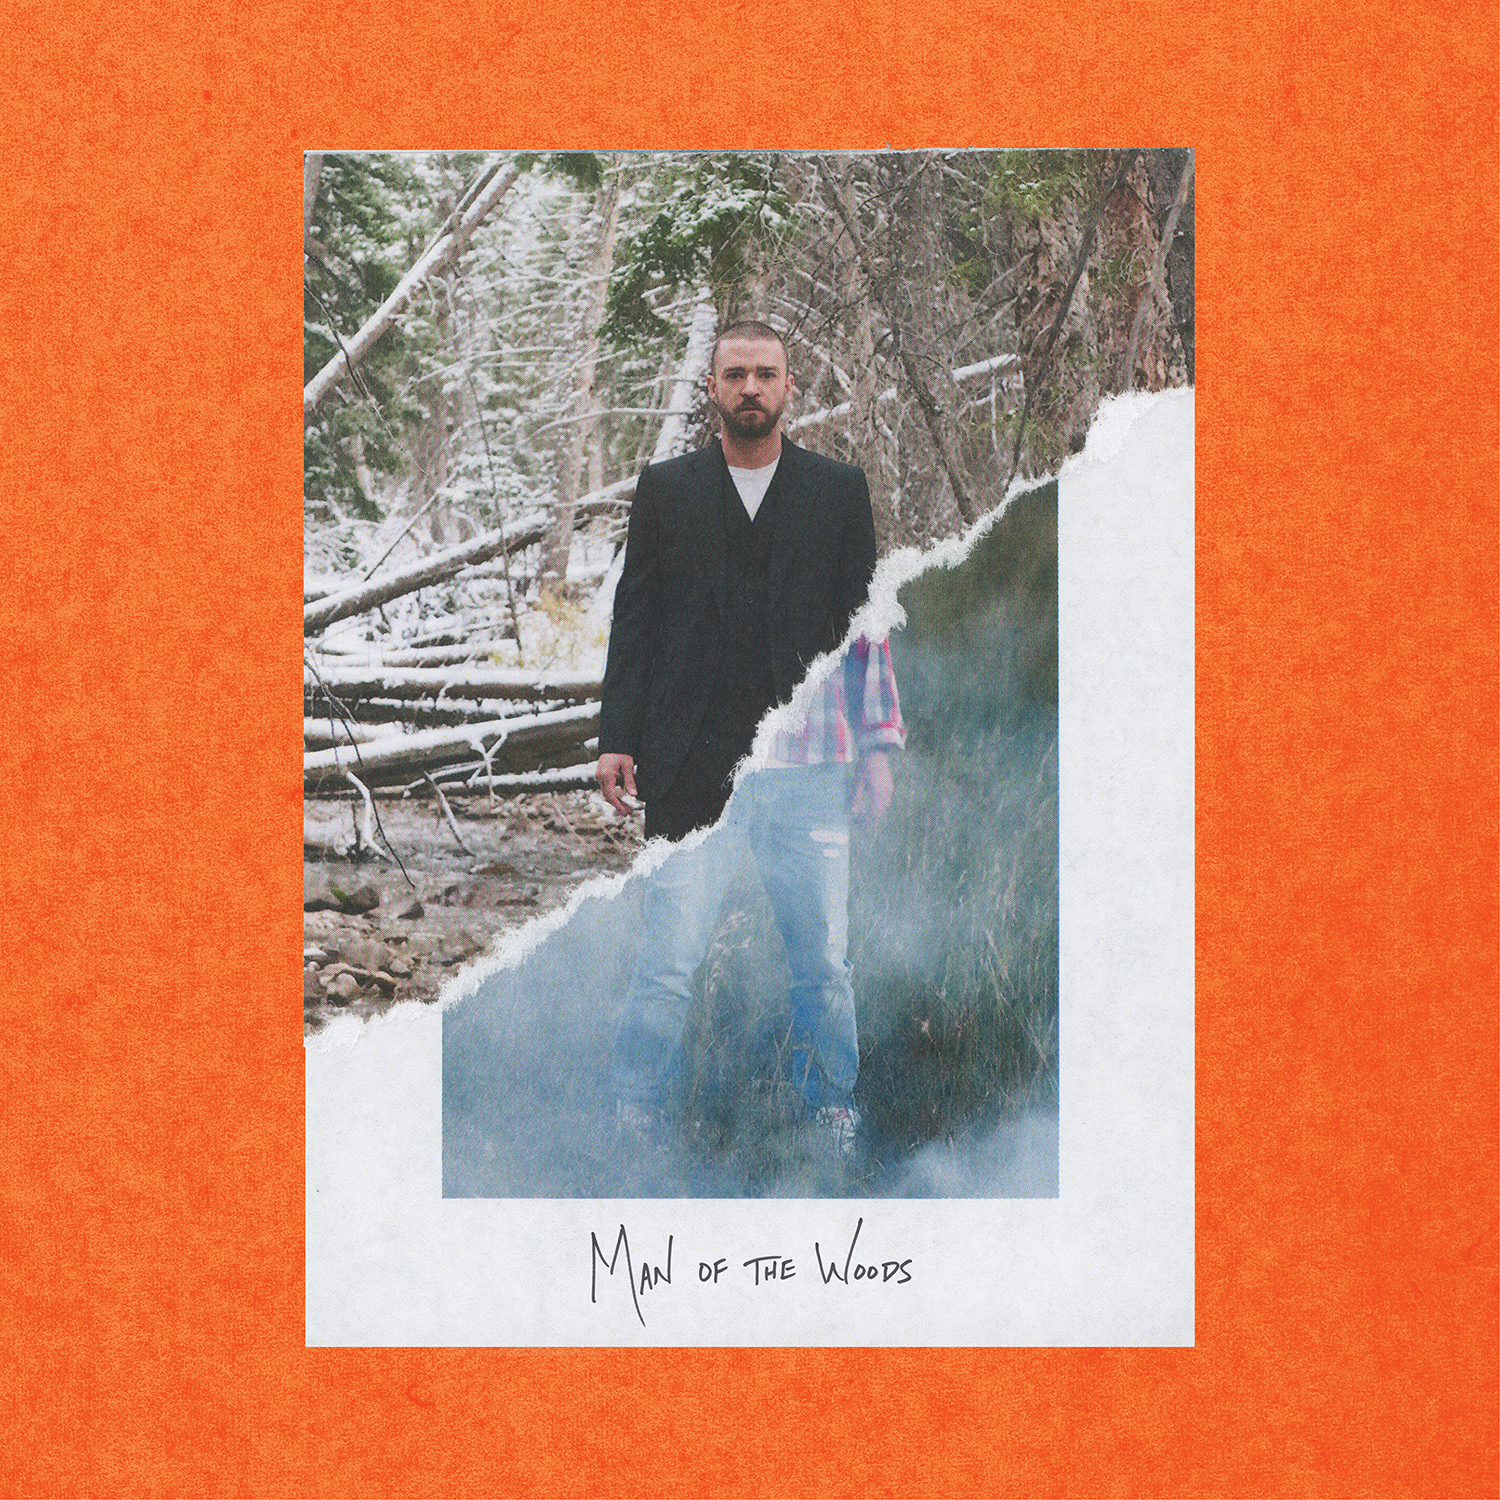 Justin Timberlake — Man of the Woods [RCA, Wright Entertainment Group, LBI Entertainment, Sony Music][19075813212](2018)